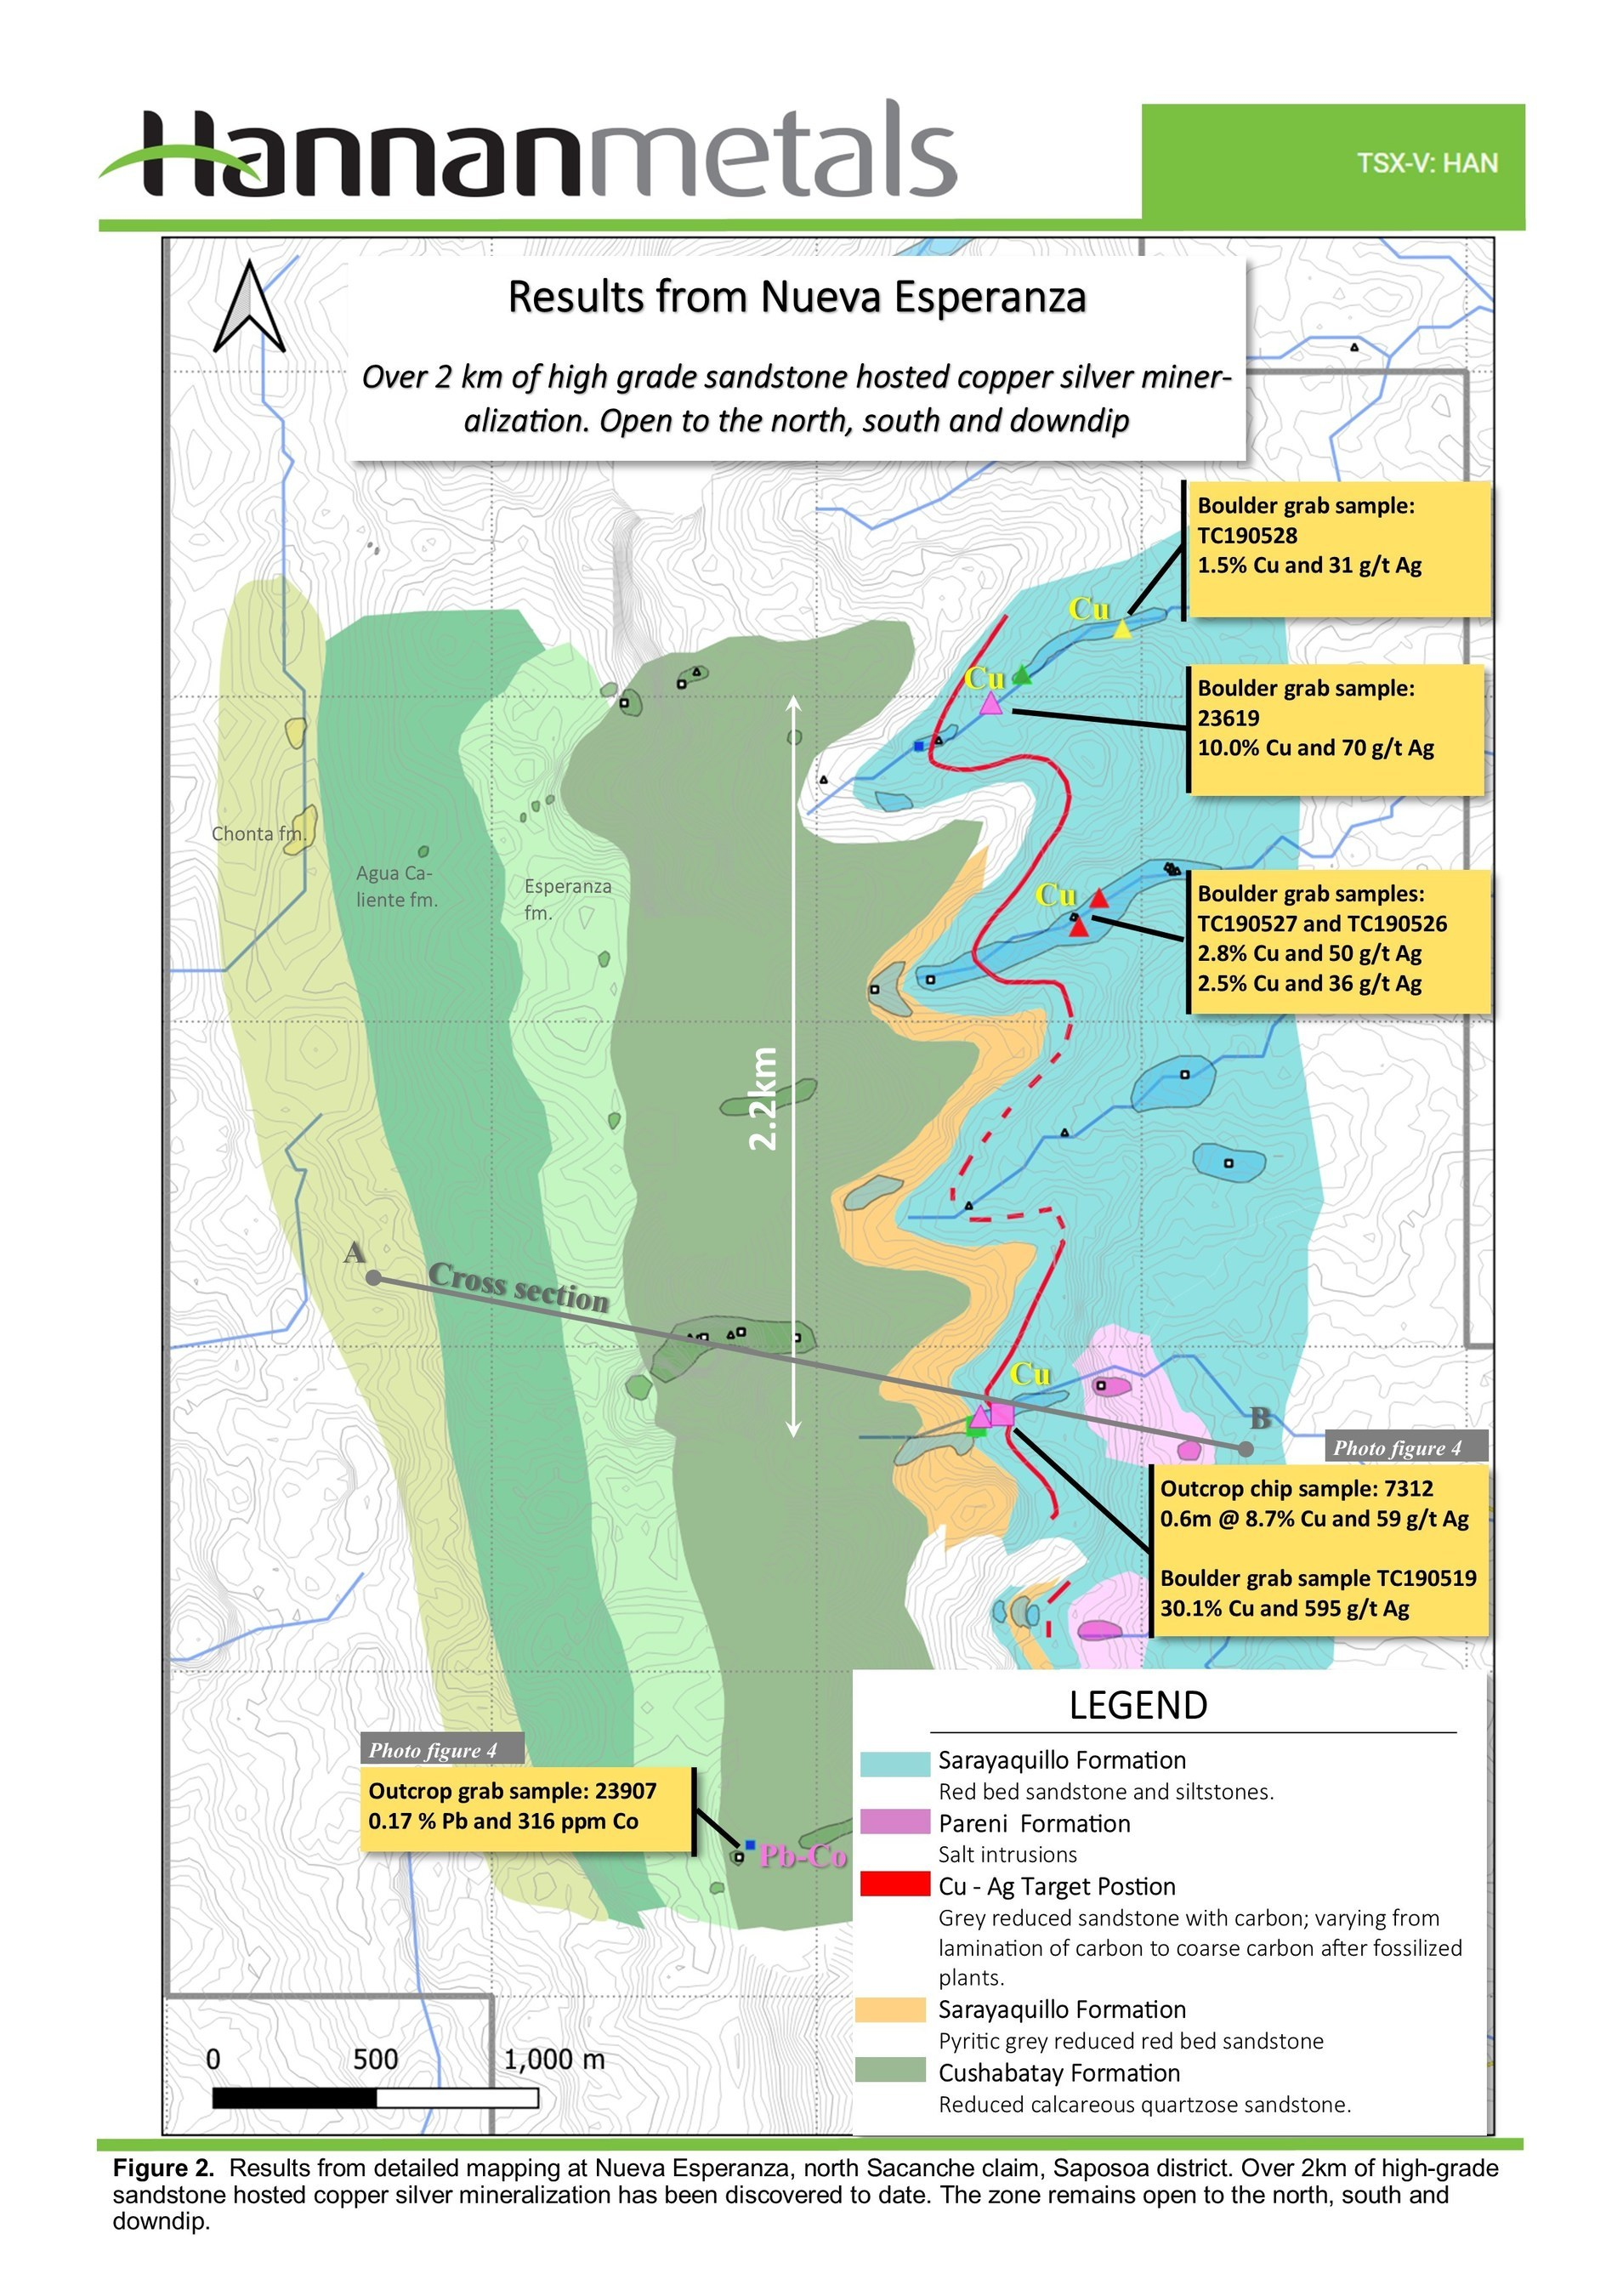 Figure 2: Results from detailed mapping at Nueva Esperanza, north Sacanche claim, Saposoa district. (CNW Group/Hannan Metals Ltd.)